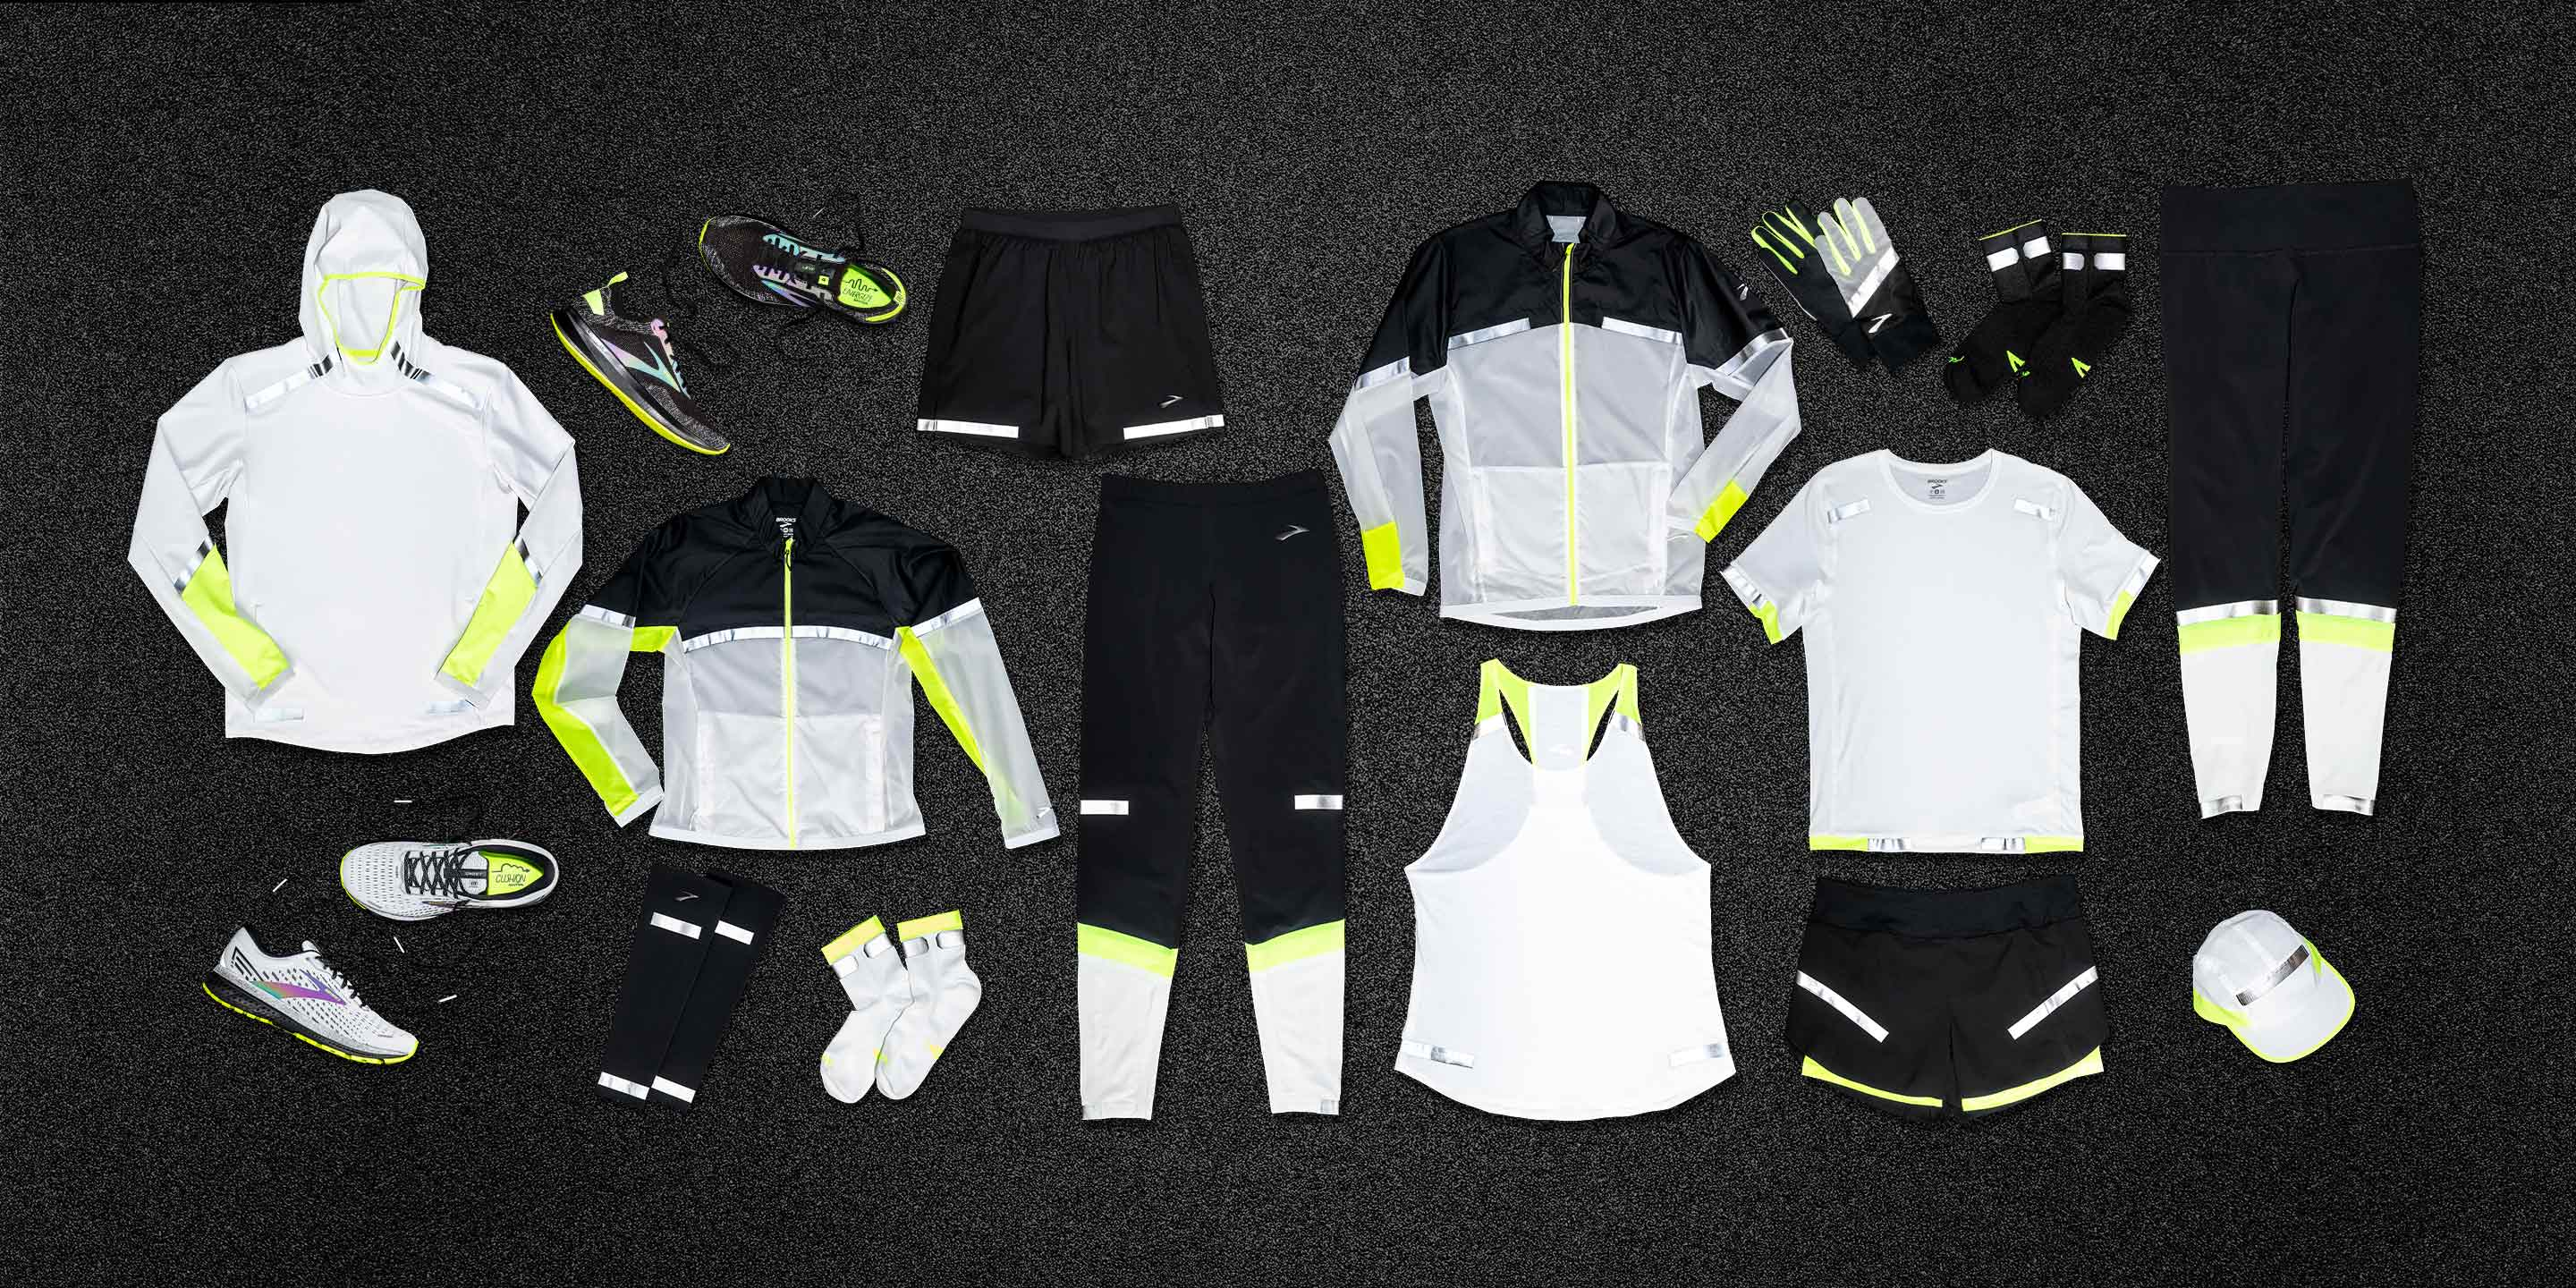 Laydown shot of all the Run Visible apparel together.